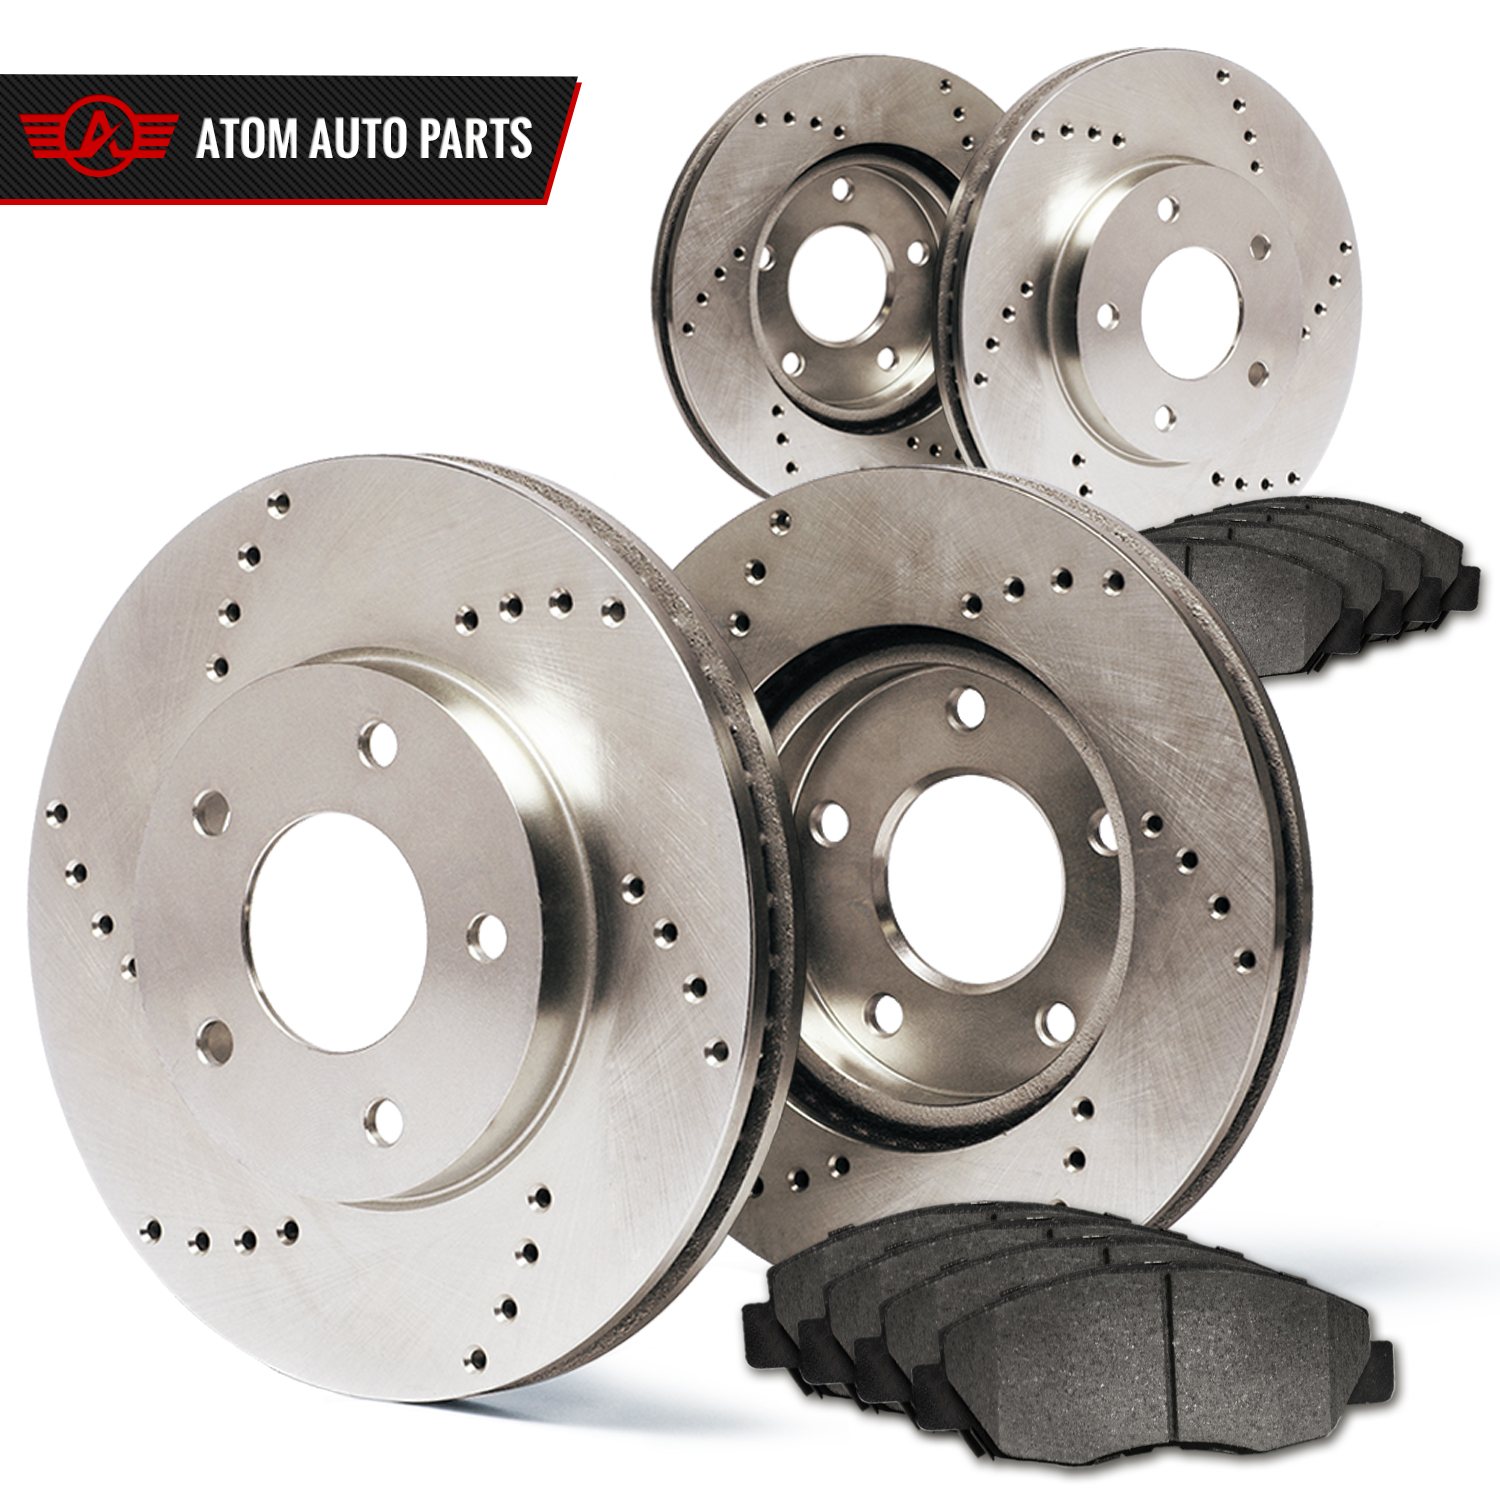 2006-2007-Cadillac-DTS-See-Desc-Cross-Drilled-Rotors-Metallic-Pads-F-R